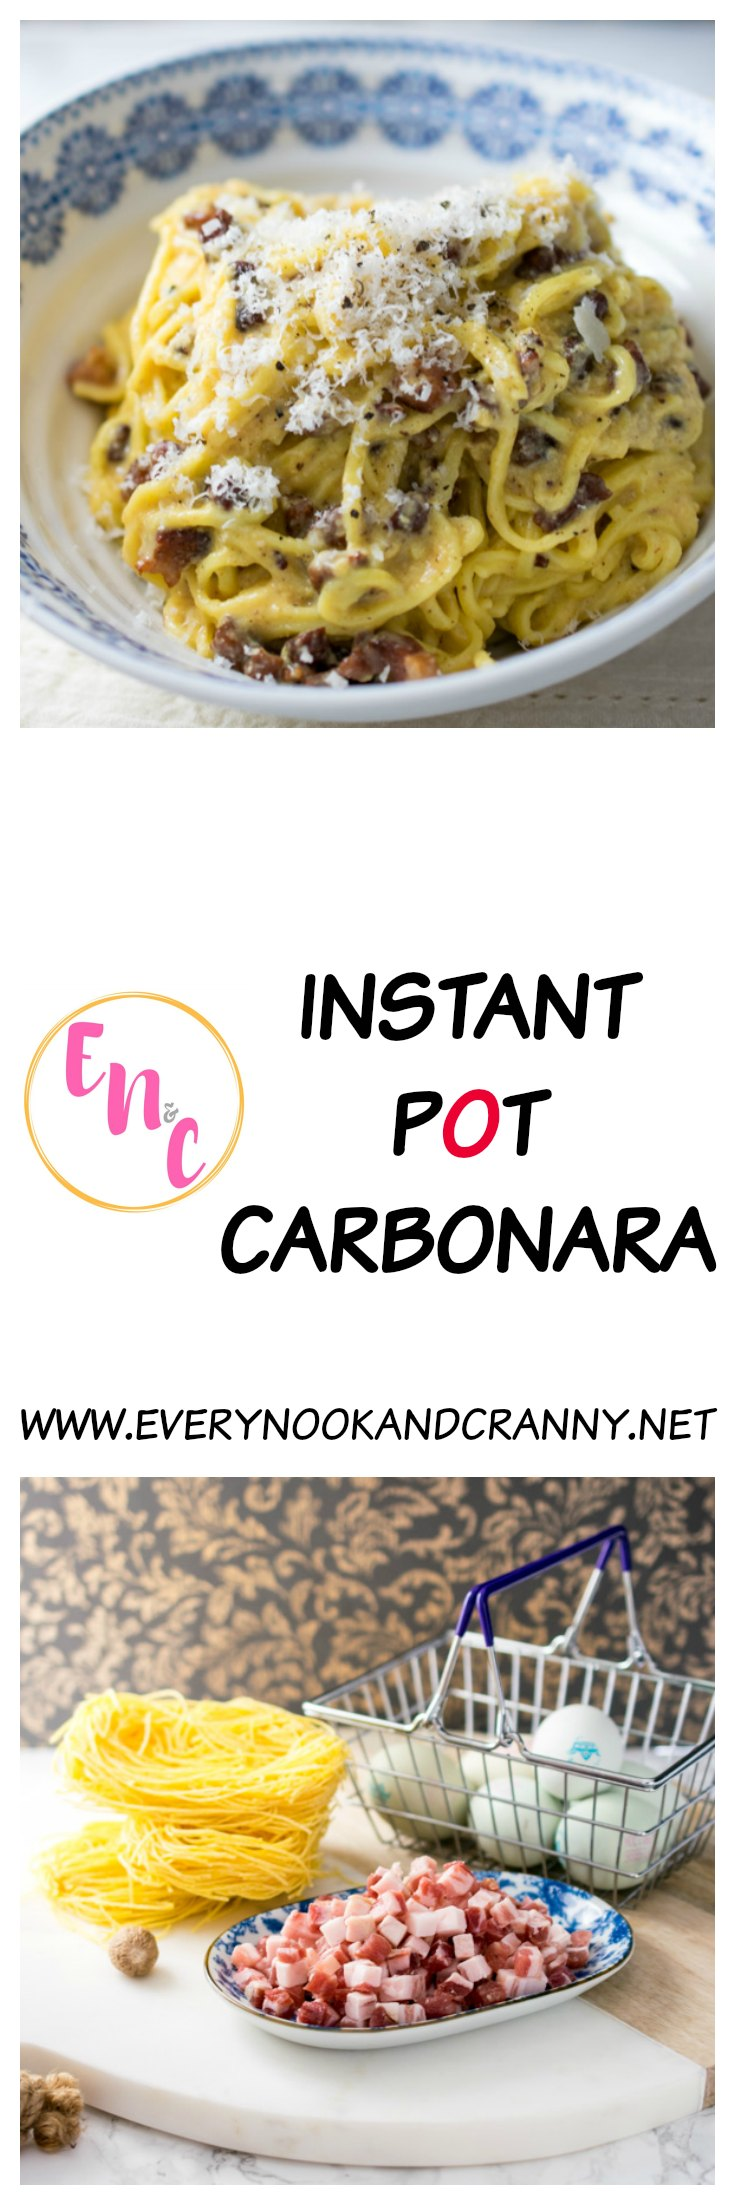 How to make a perfect carbonara in the Instant Pot